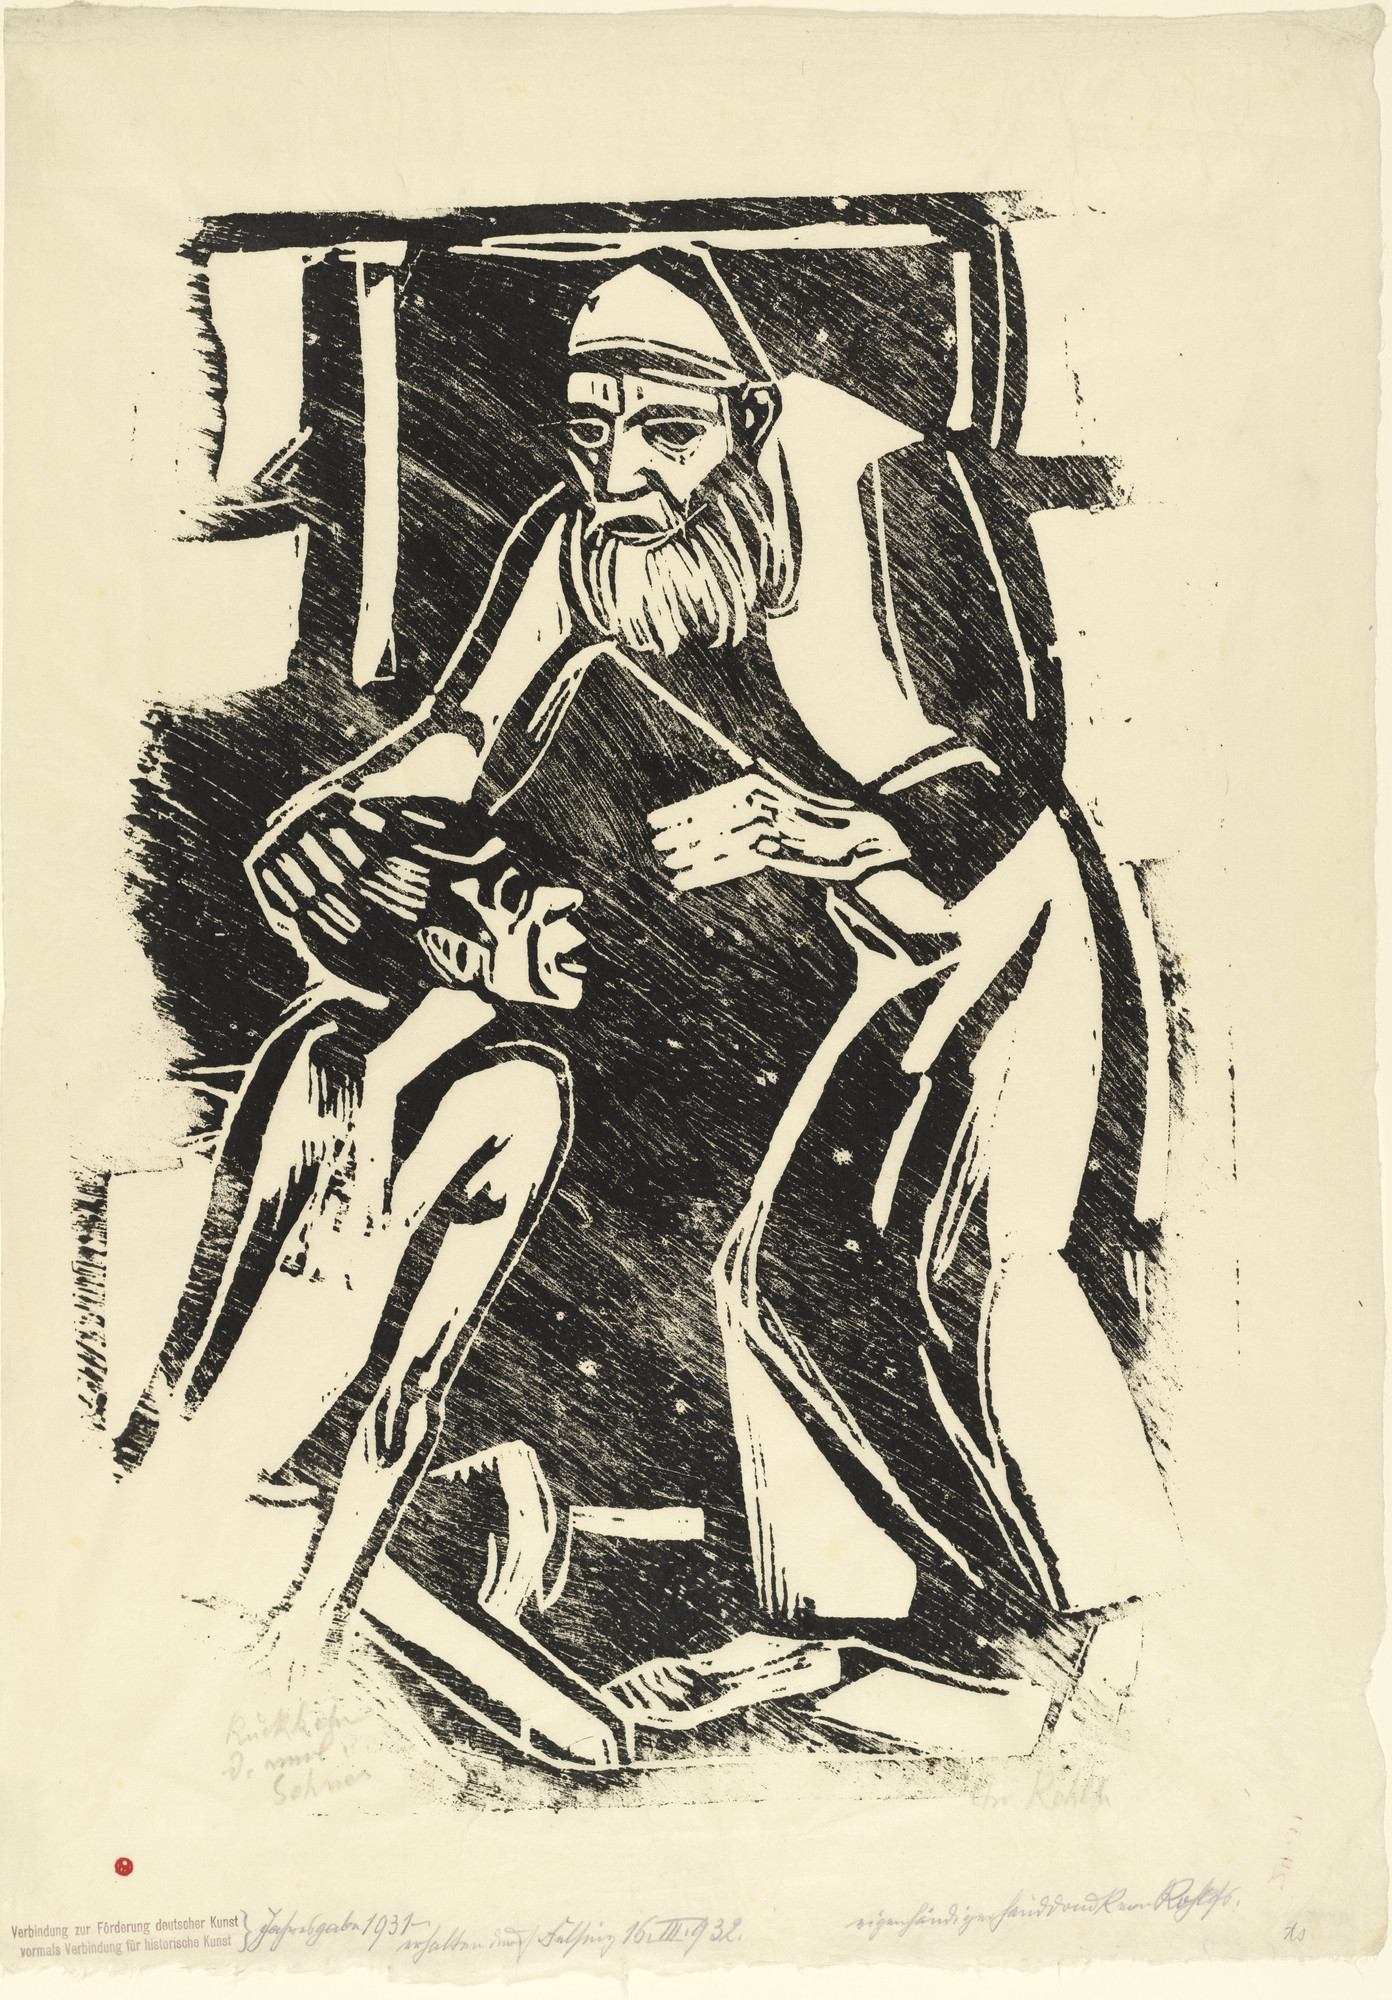 Christian Rohlfs. Return of the Prodigal Son (Rückkehr des verlorenen Sohnes) from the annual portfolio of the Alliance for the Advancement of German Art (Verbindung zur Förderung deutscher Kunst). (1916, published 1931)